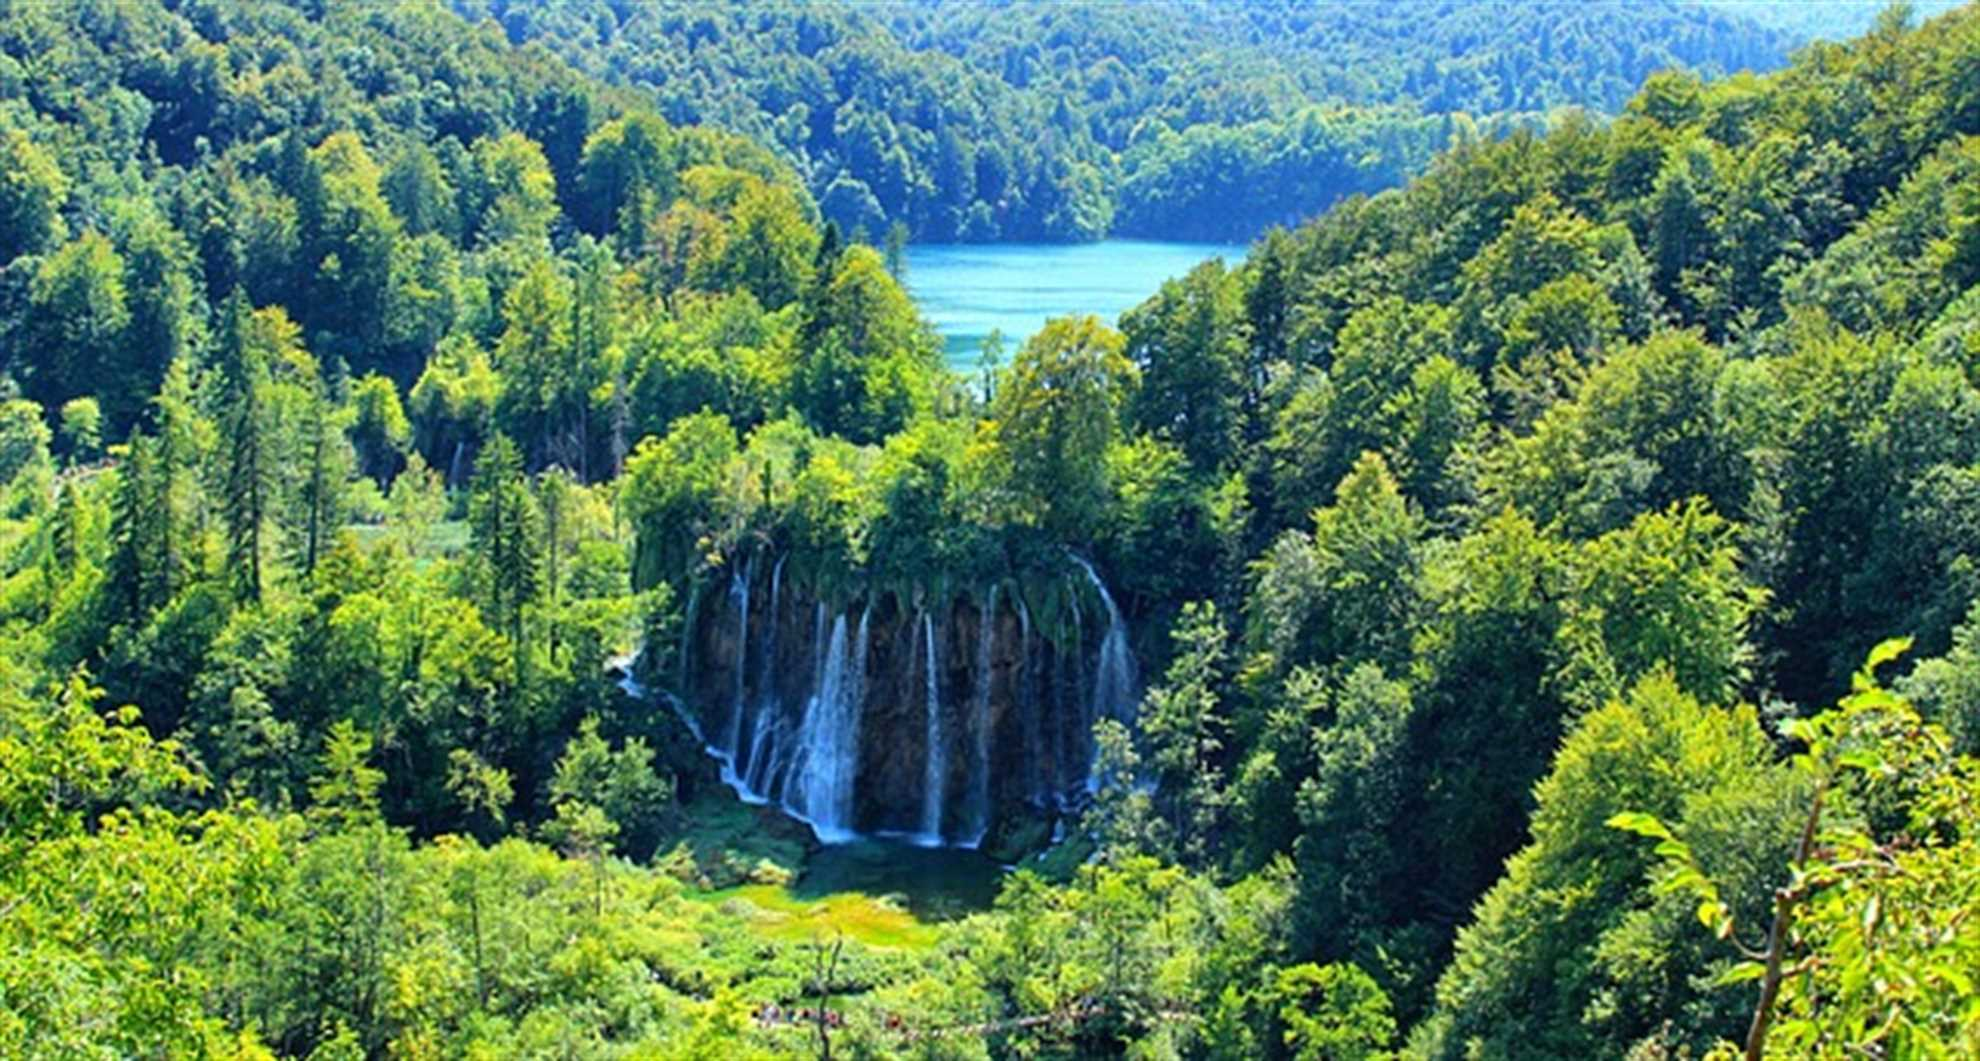 Majestic waterfalls of Plitvice Lakes